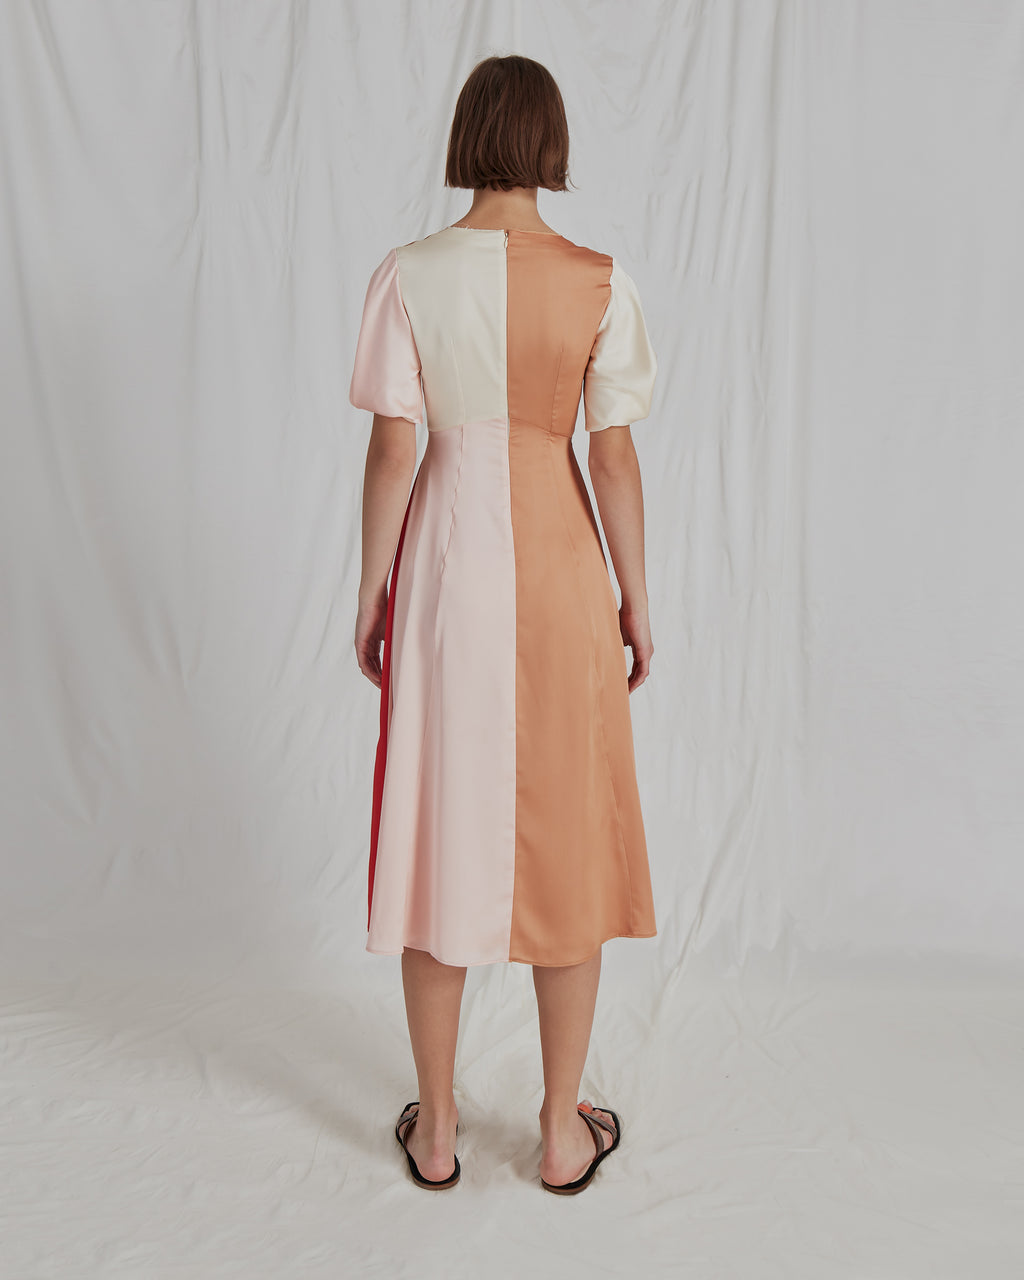 Harriet Dress Satin Red and Ivory Blush